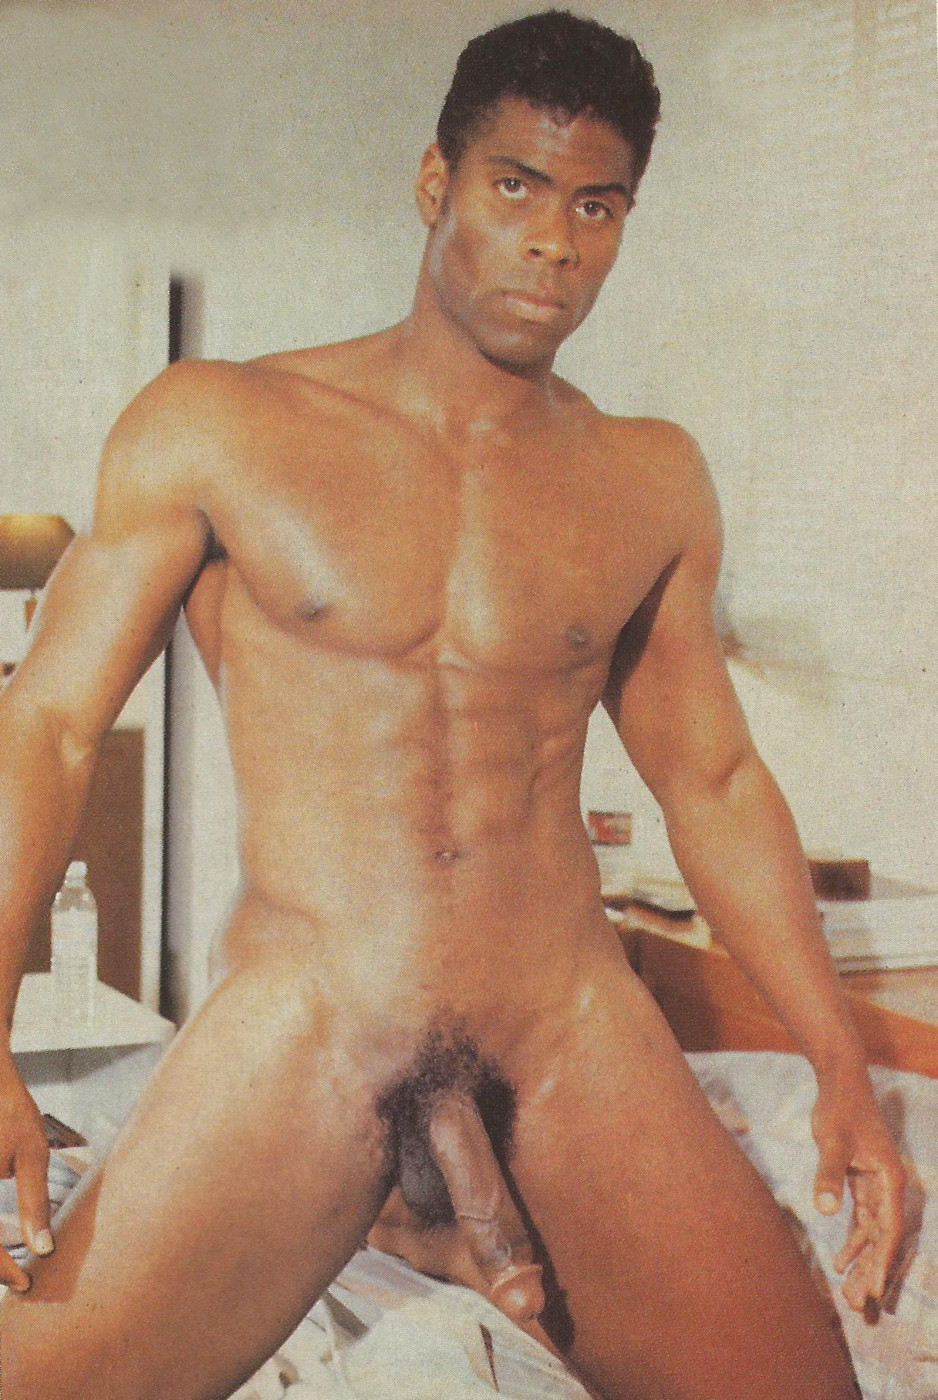 from Cory black gay studs